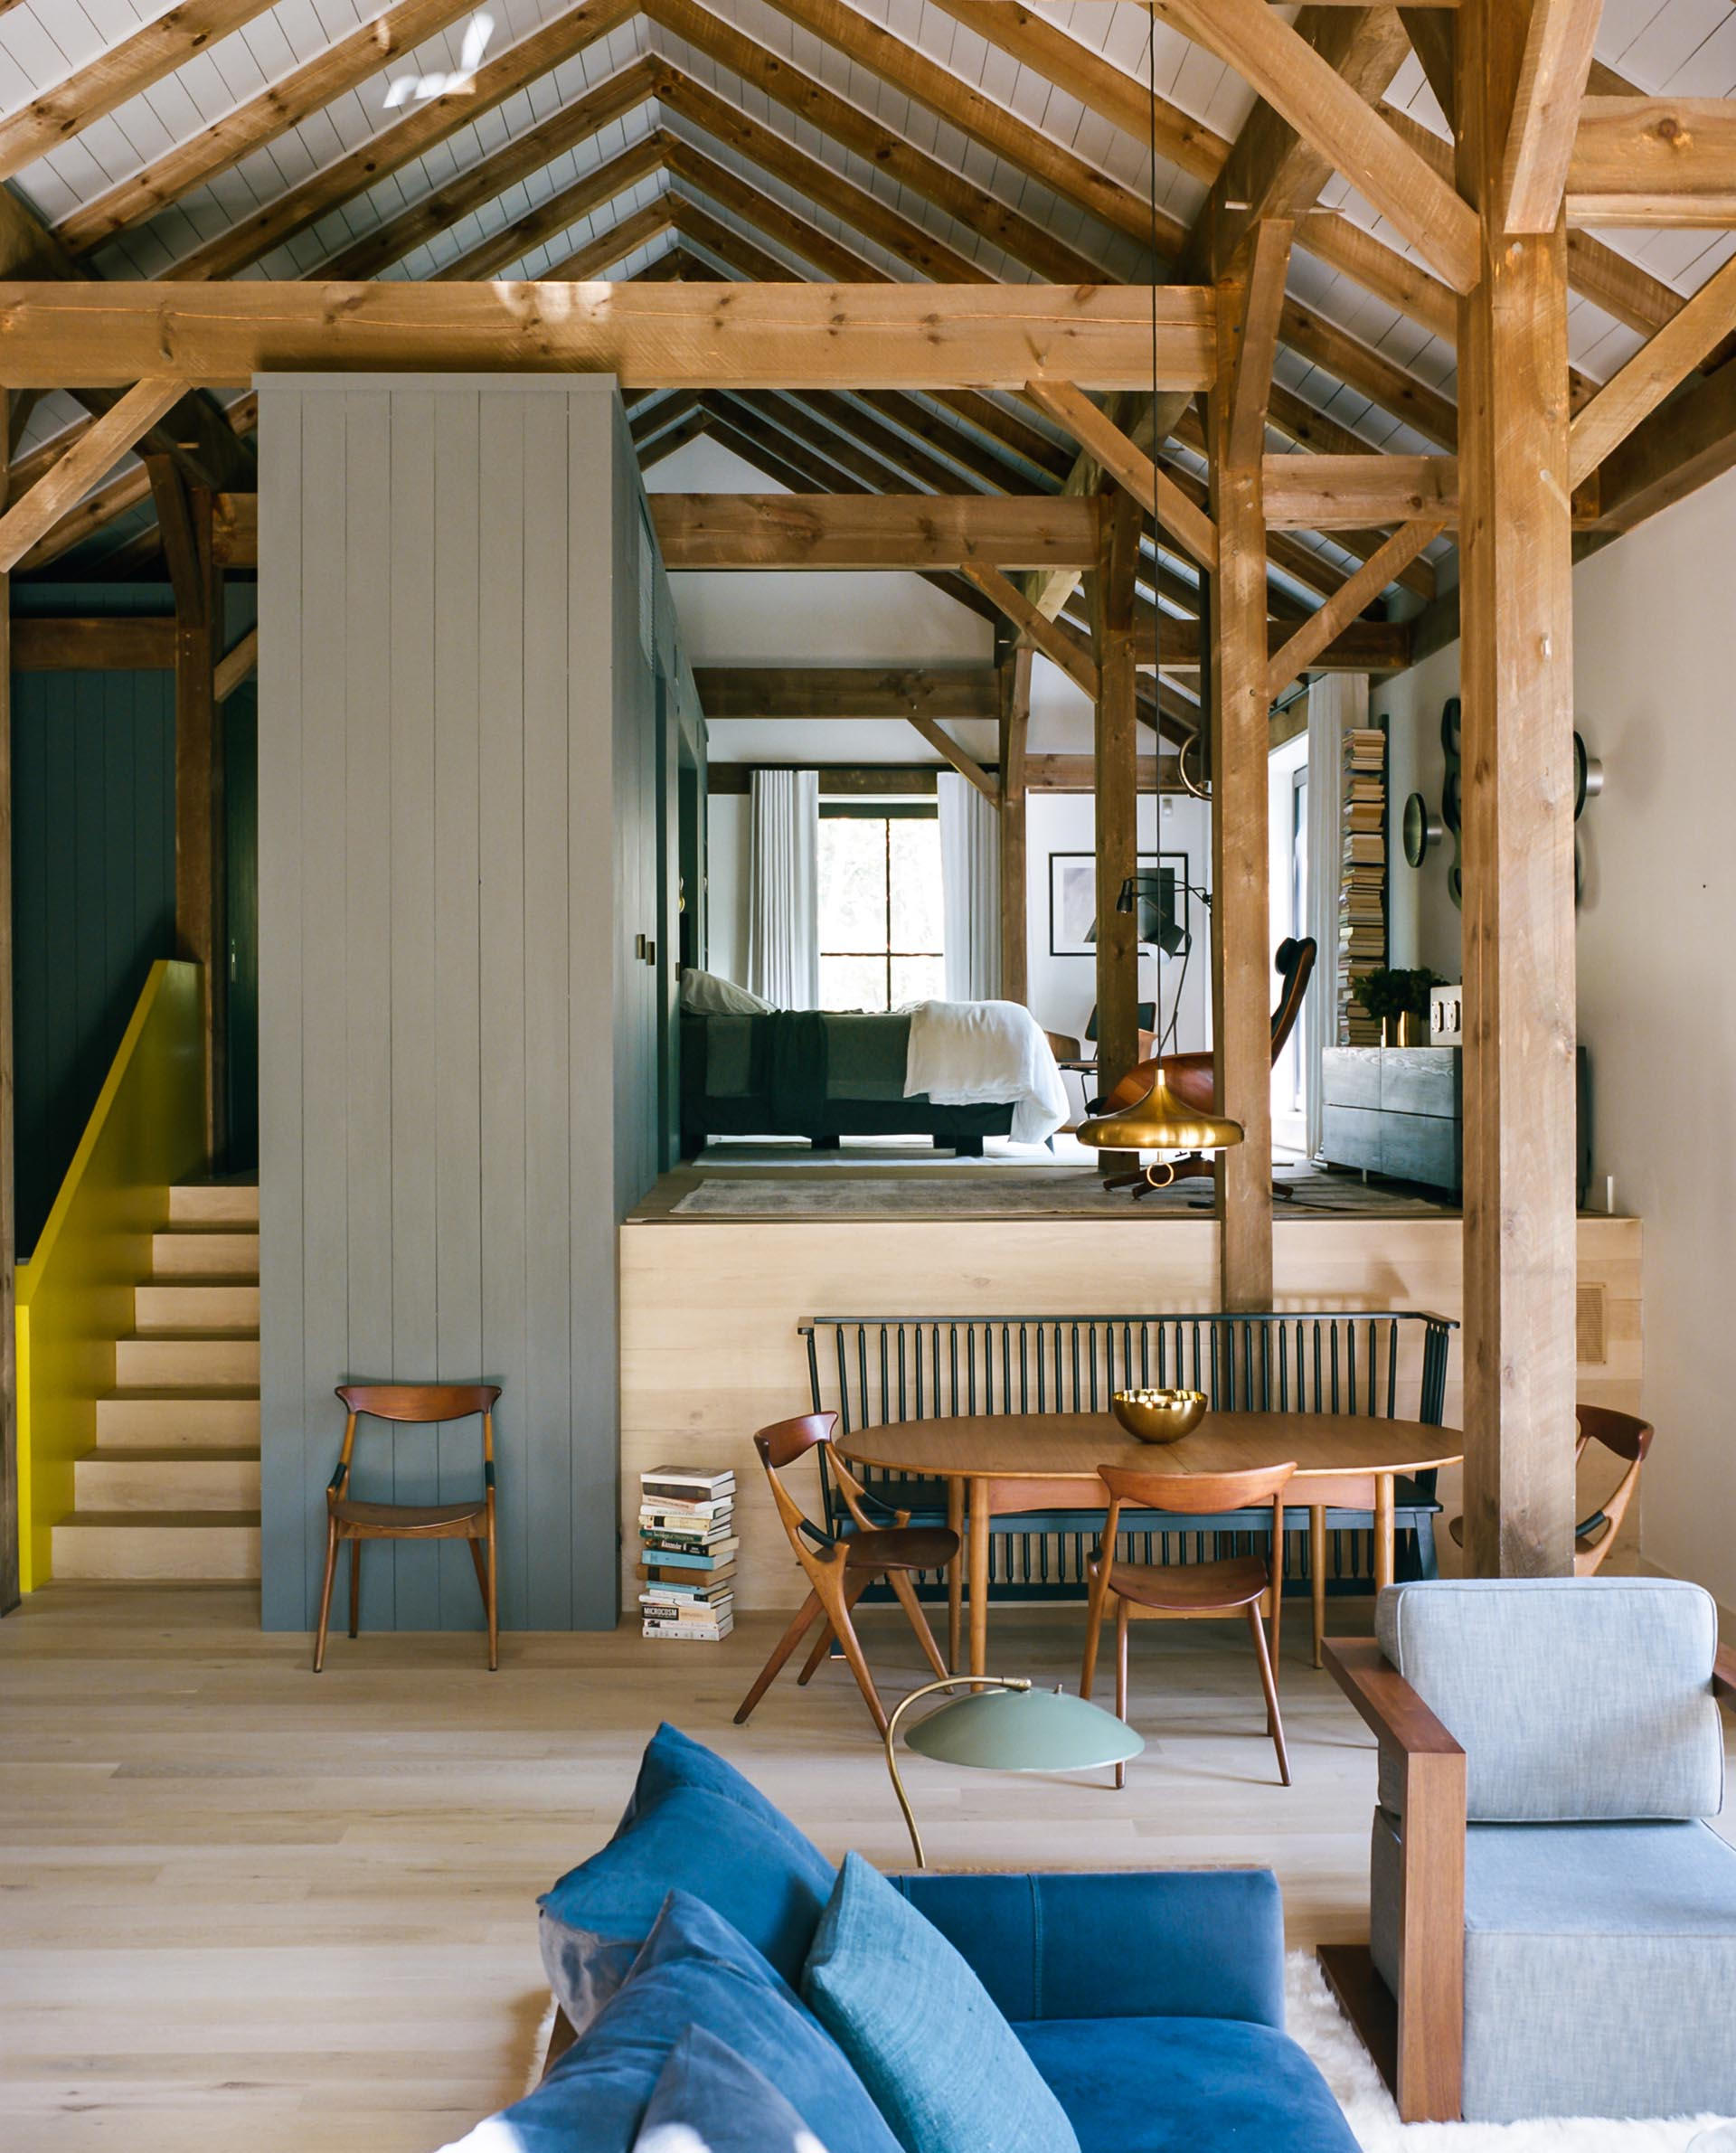 The multi-level interior of a barn-inspired home.